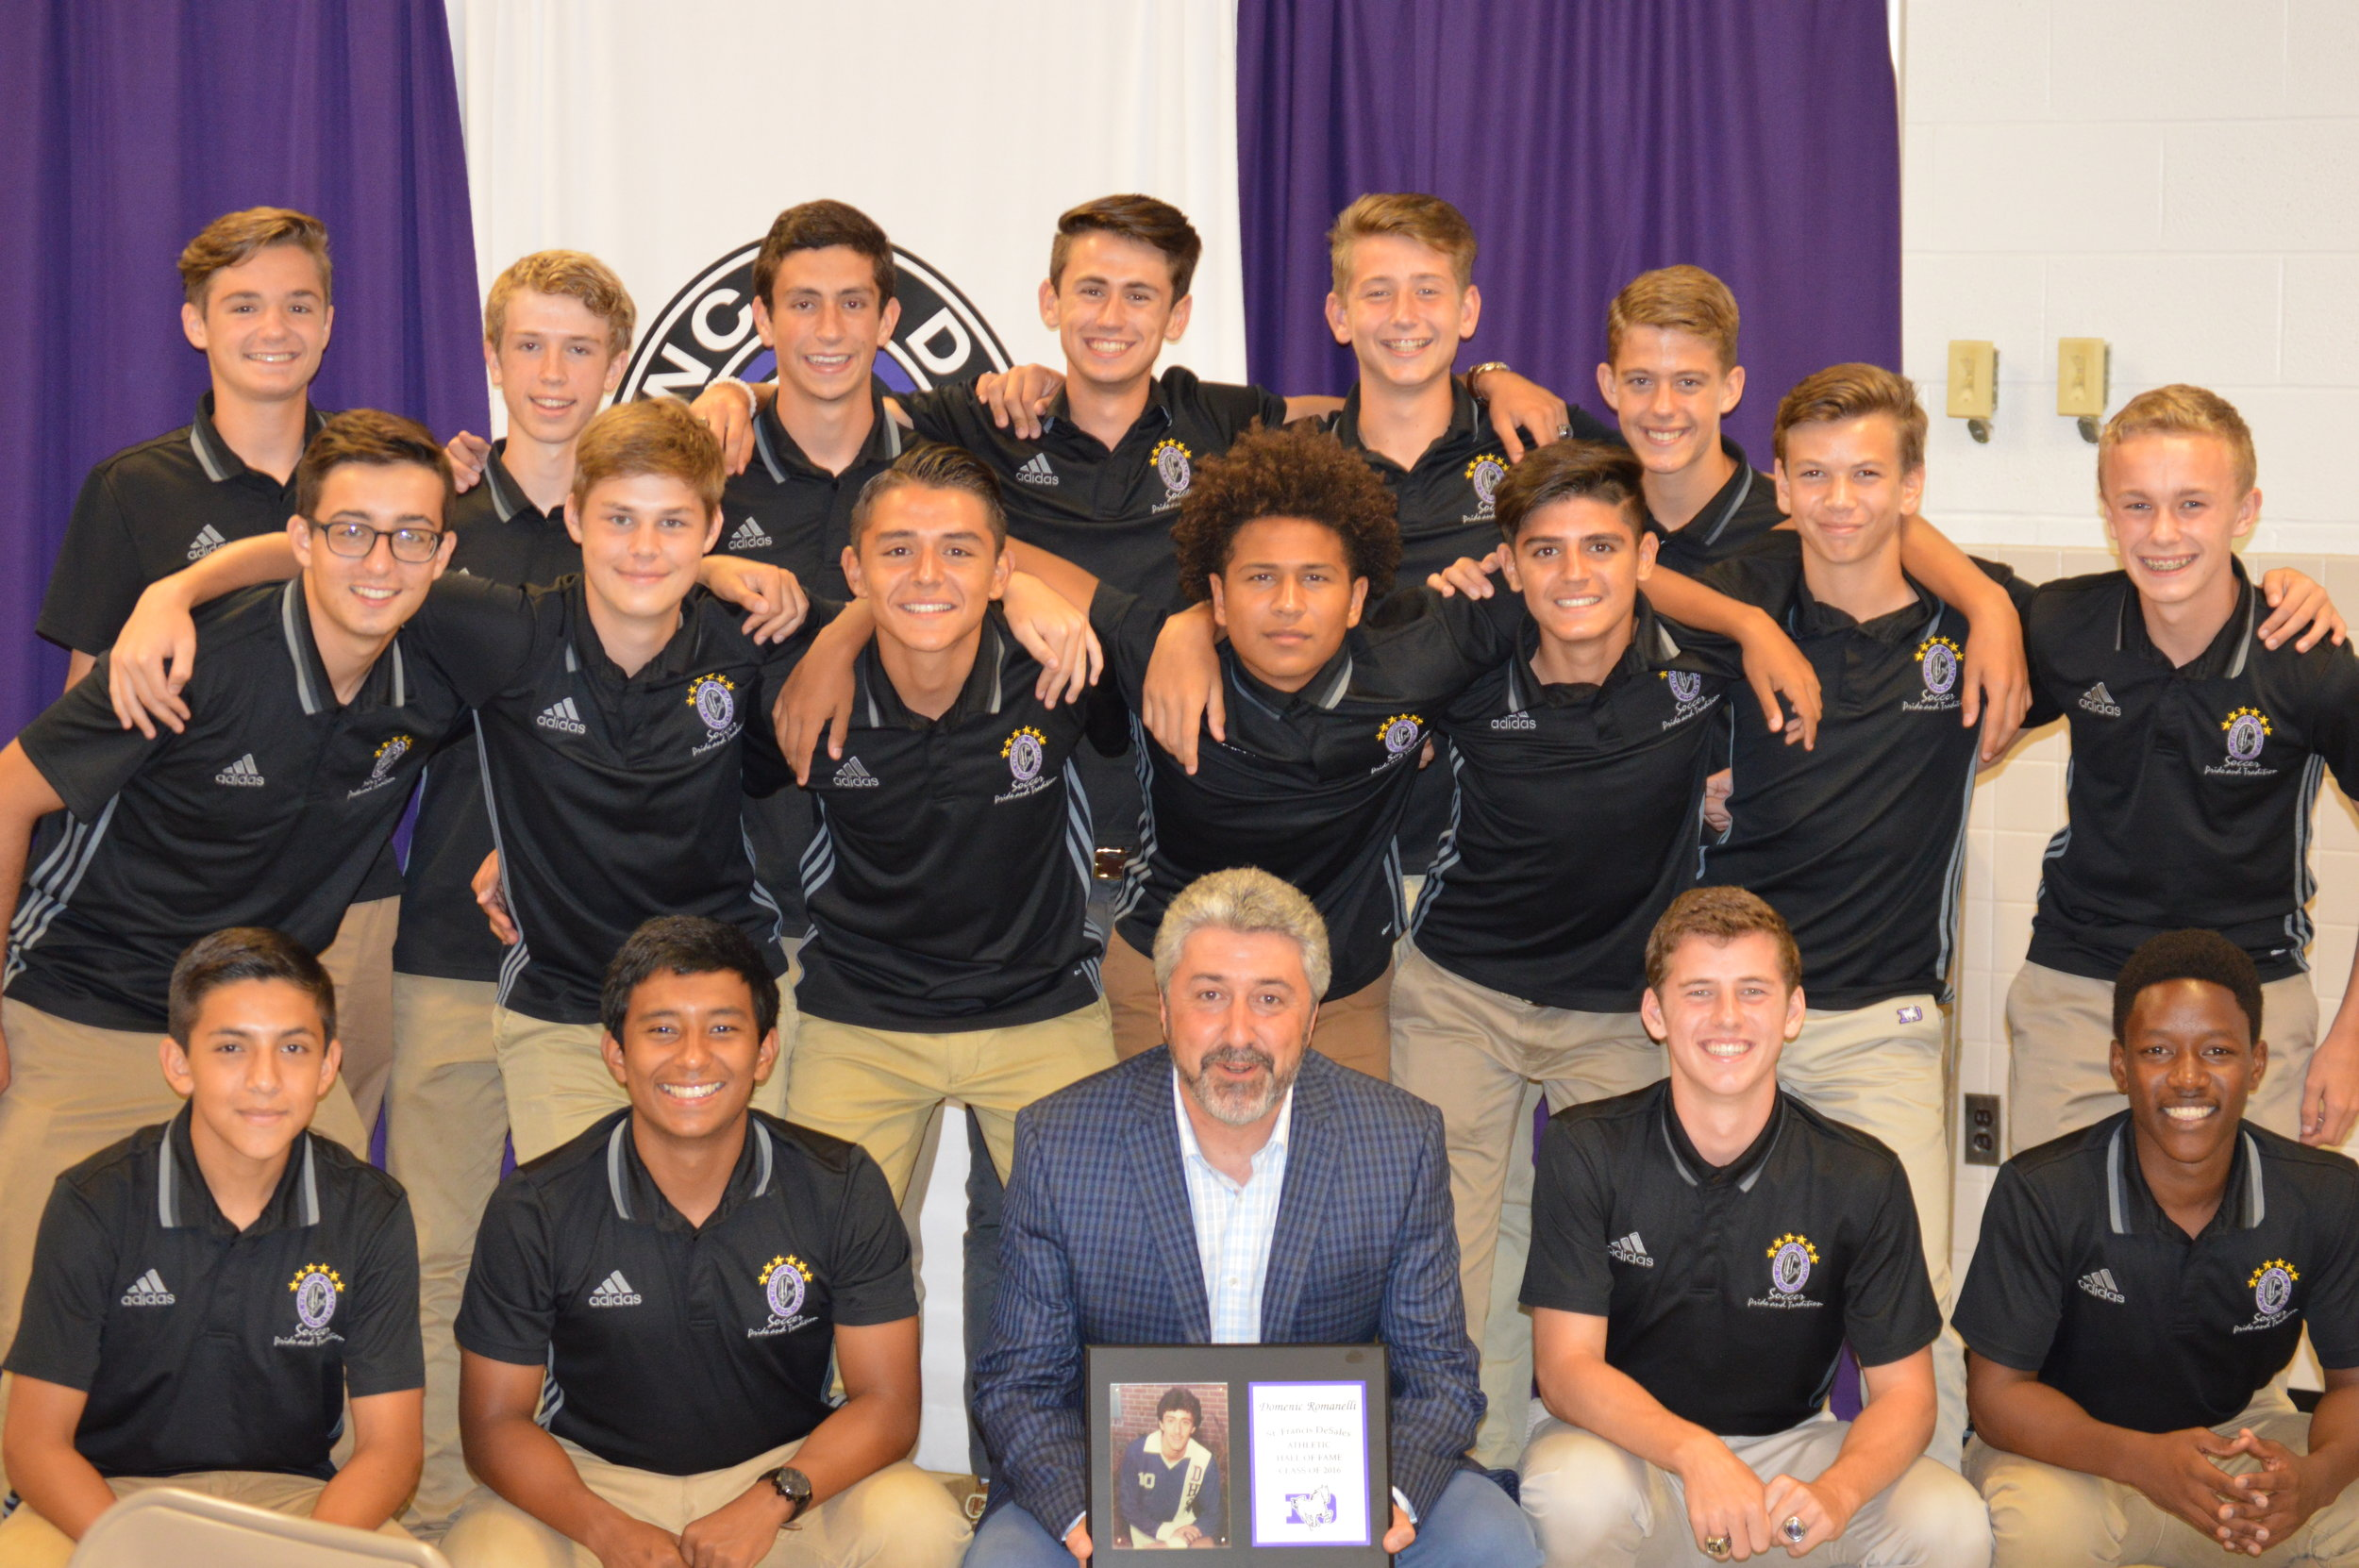 Coach Romanelli with his 2016 Boys Soccer team